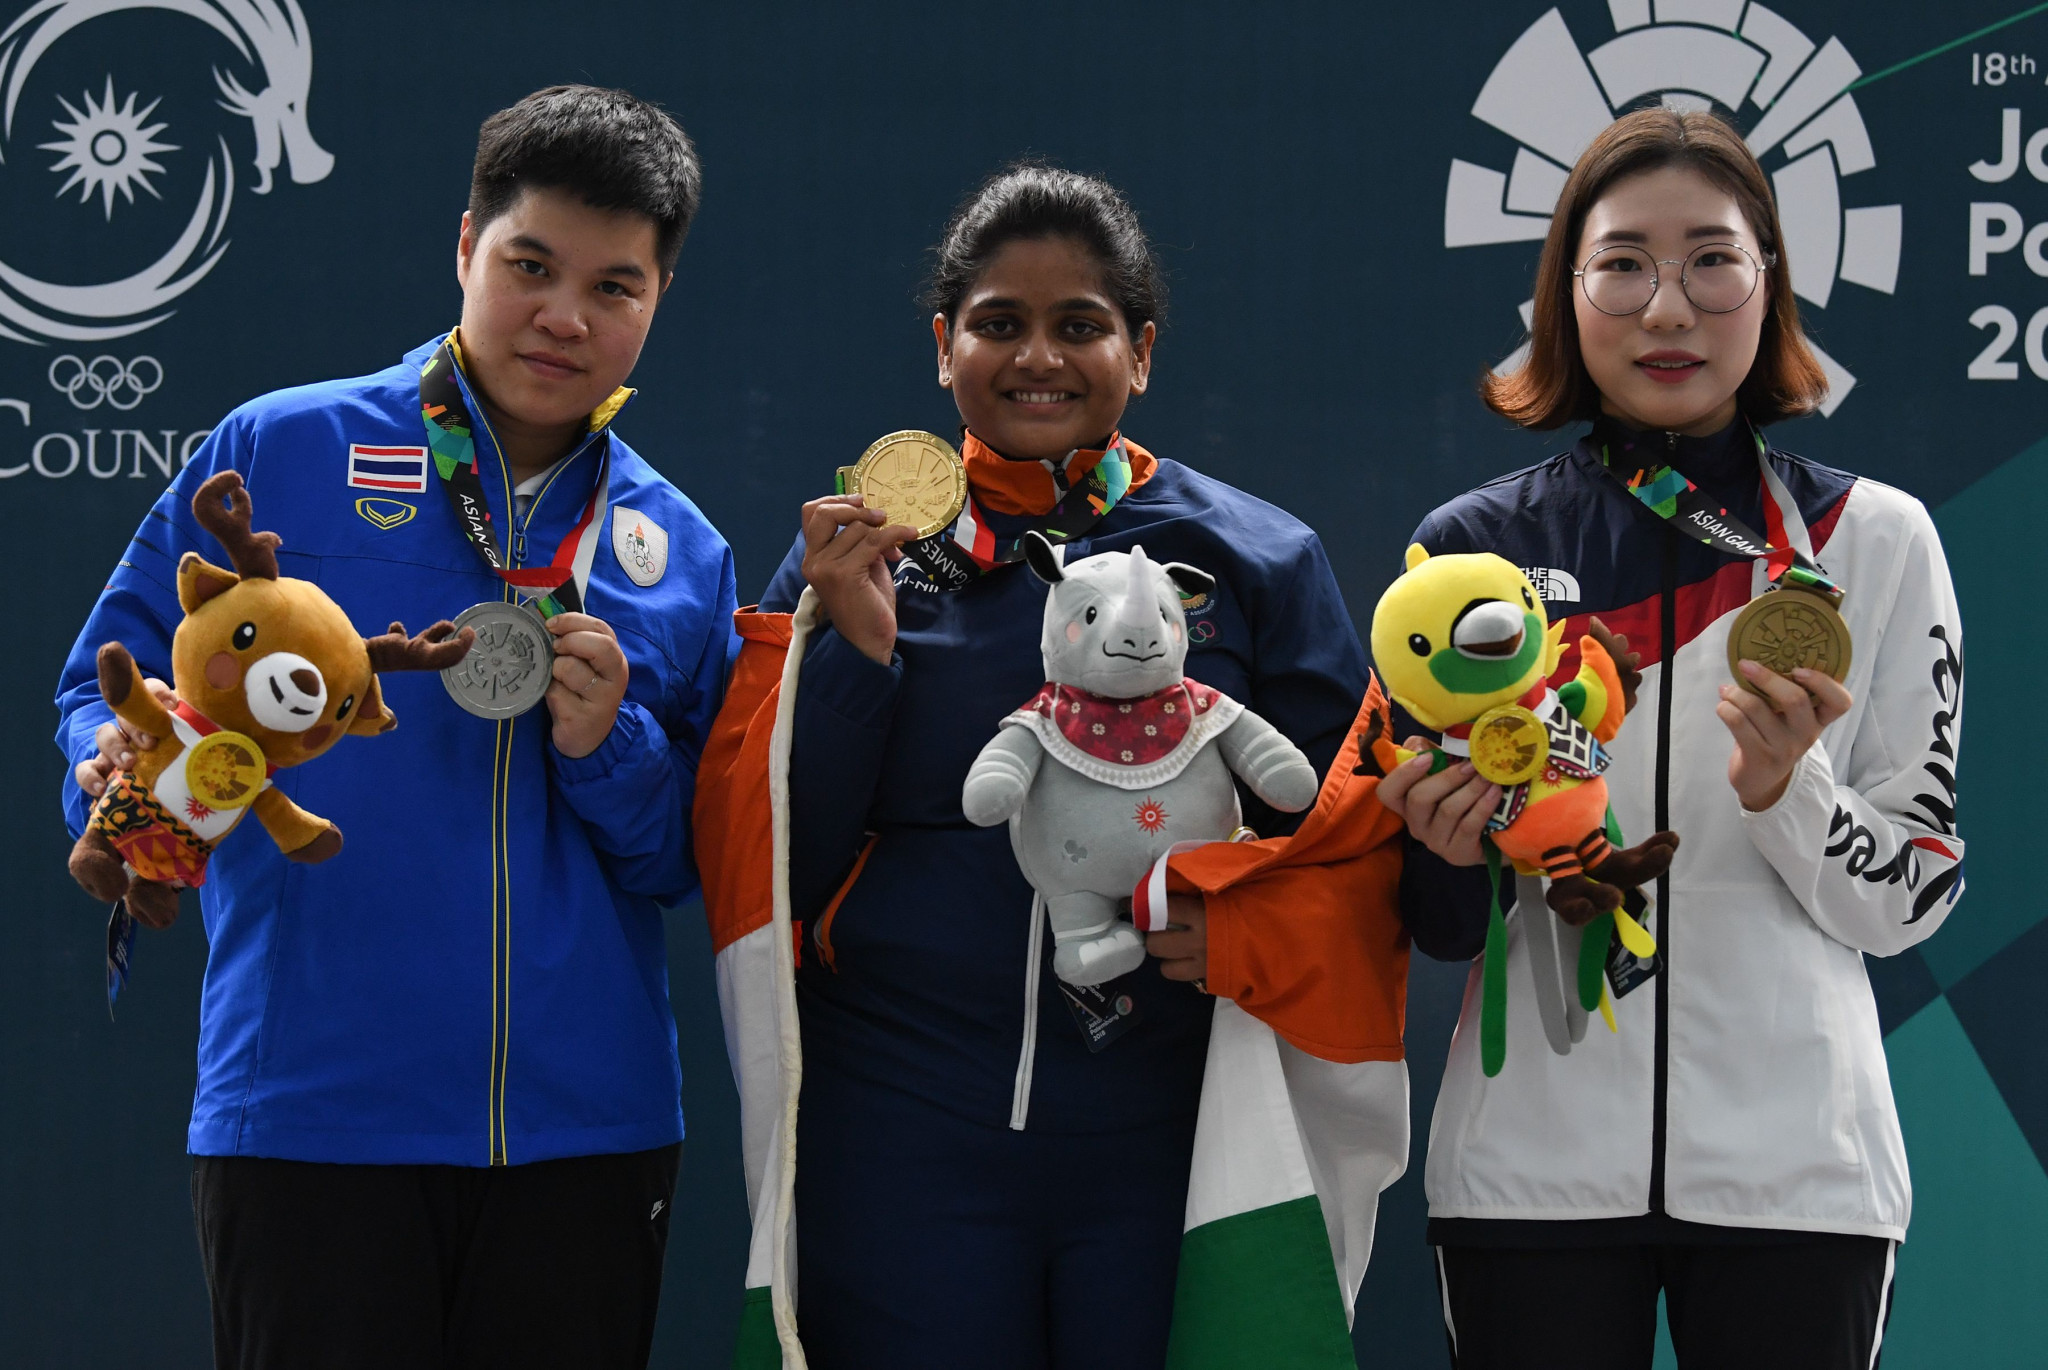 Thailand's Yangpaiboon takes women's 25m pistol title at Asian Shooting Championships